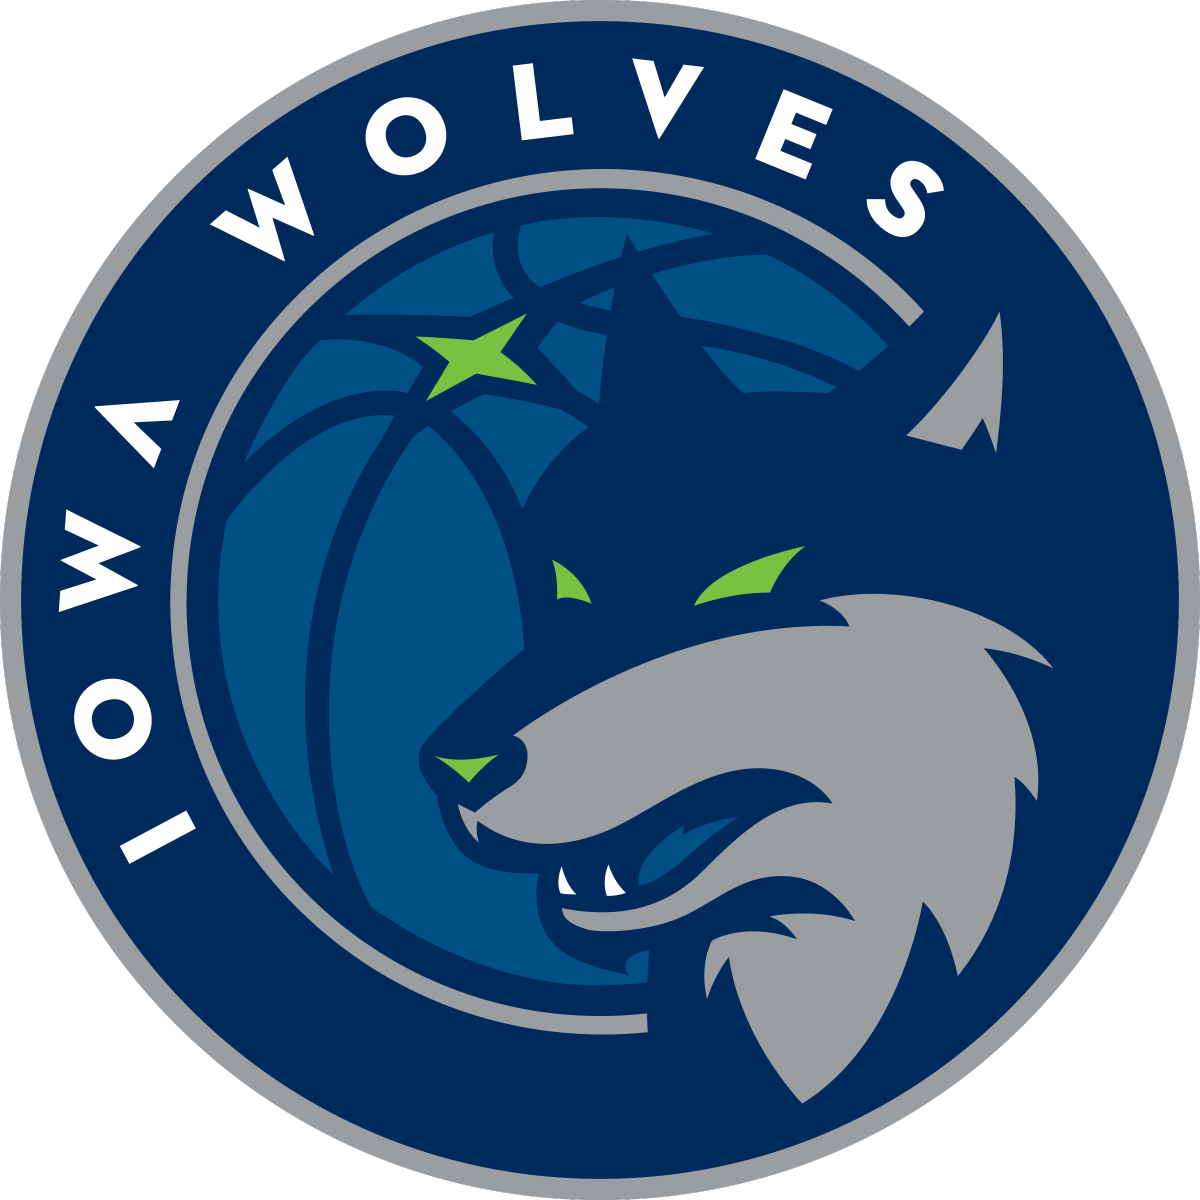 Cobra baseball mascot clipart royalty free library Iowa Wolves Primary Logo (2018) - | Illustration (Team Mascot ... royalty free library